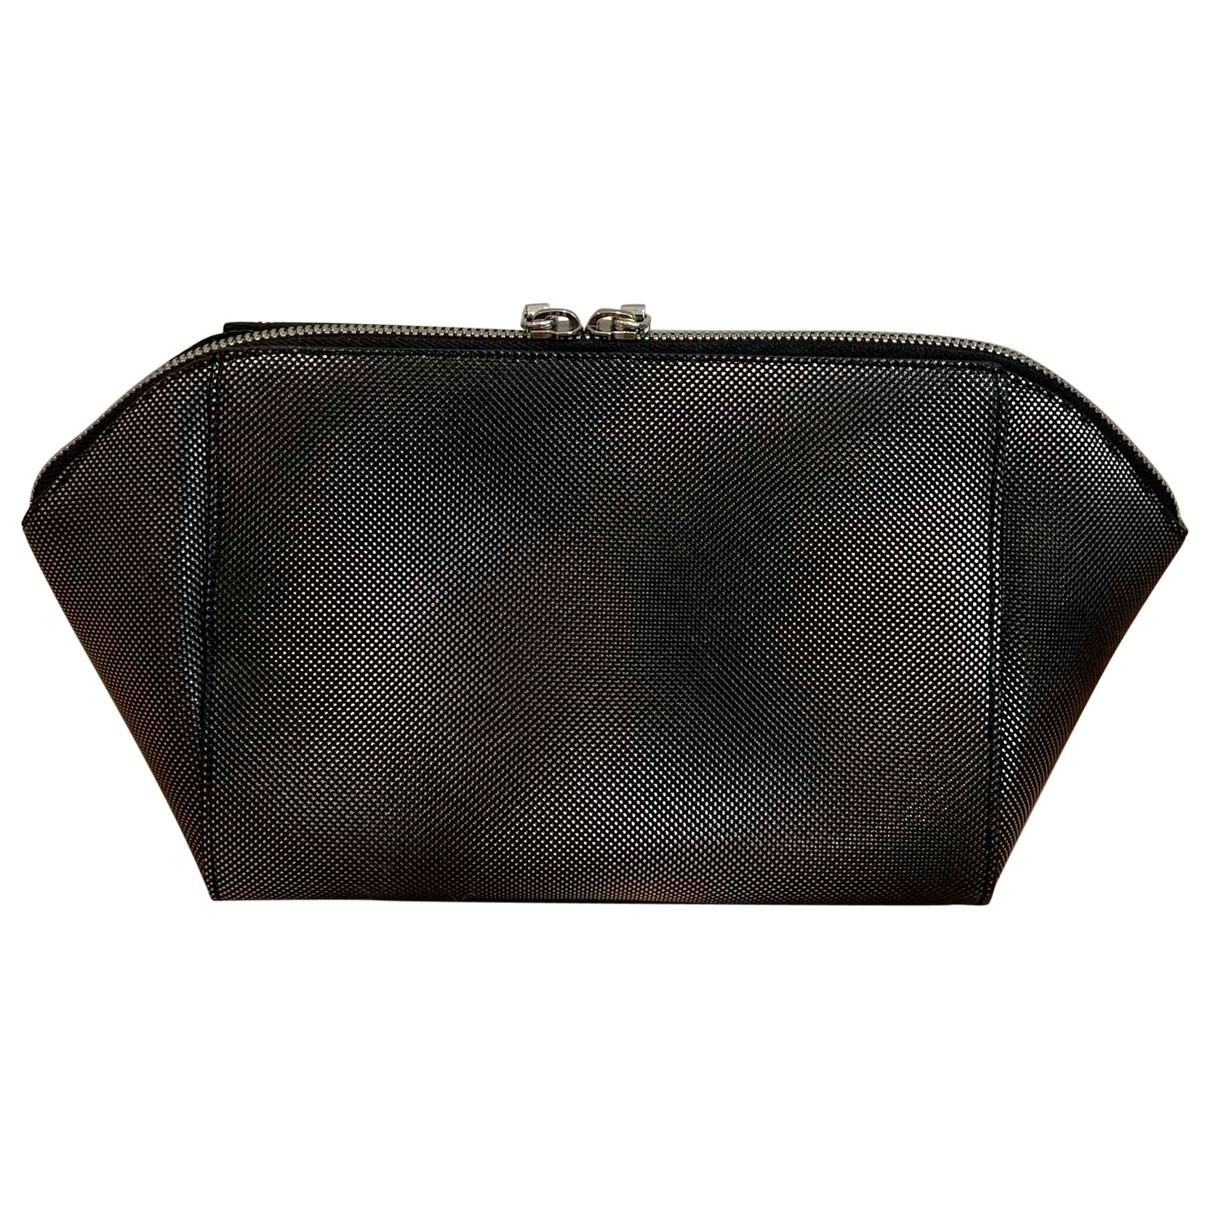 Alexander Wang \N Metallic Leather Clutch bag for Women \N